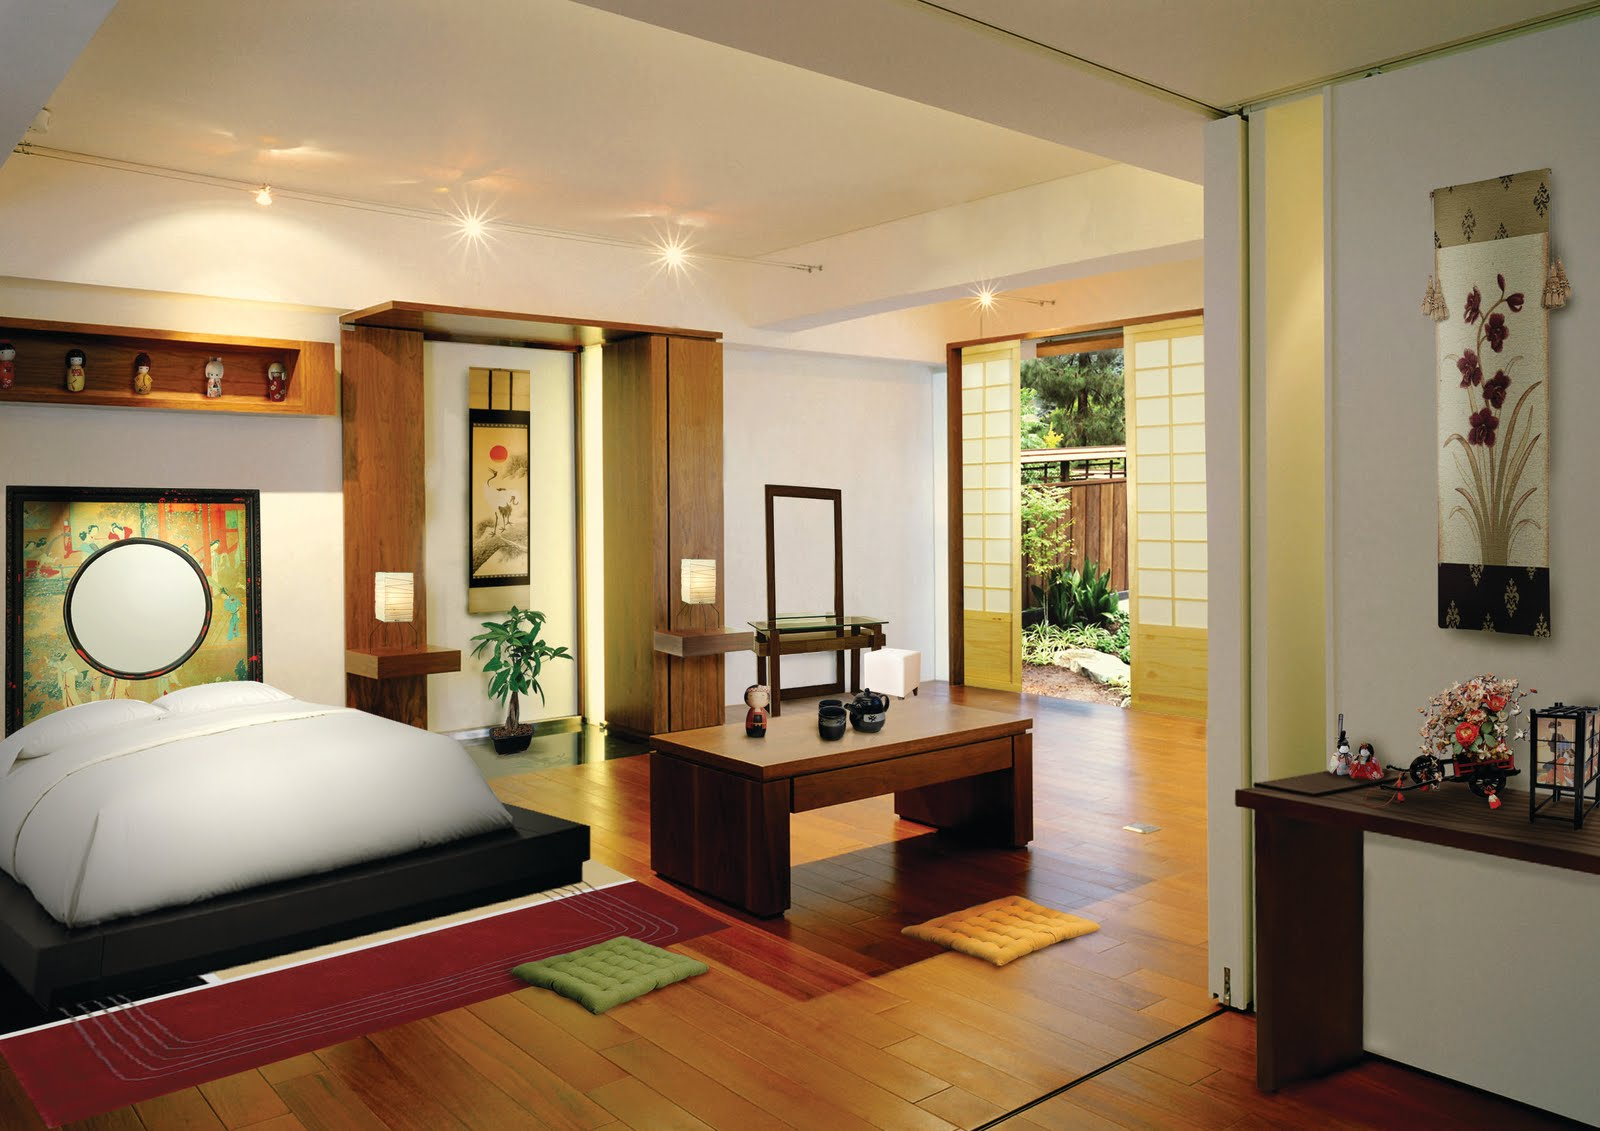 Melokumi: Japanese Style Bedroom Design